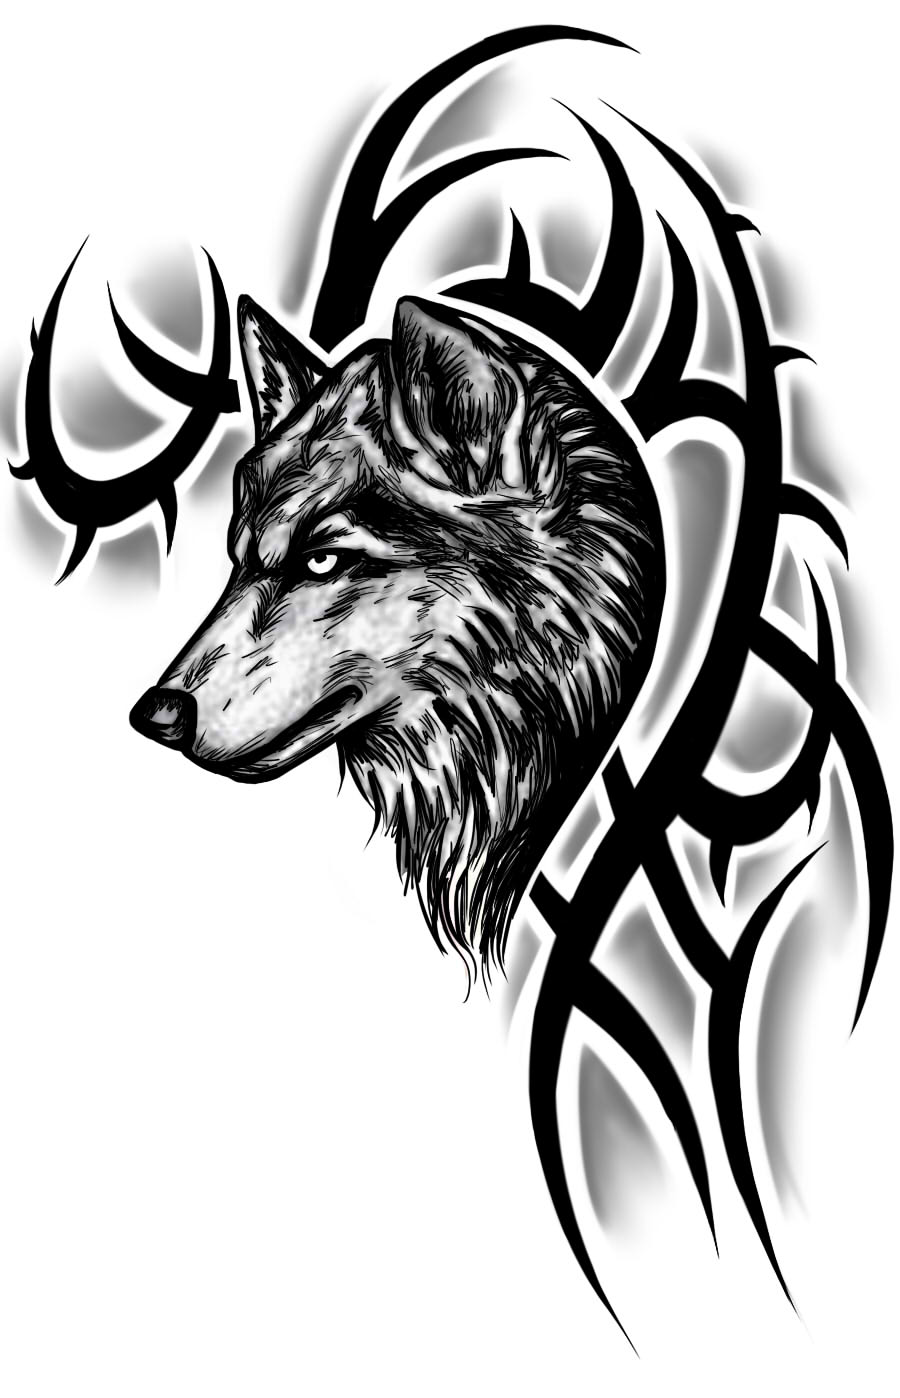 wolf tattoos designs ideas and meaning tattoos for you. Black Bedroom Furniture Sets. Home Design Ideas